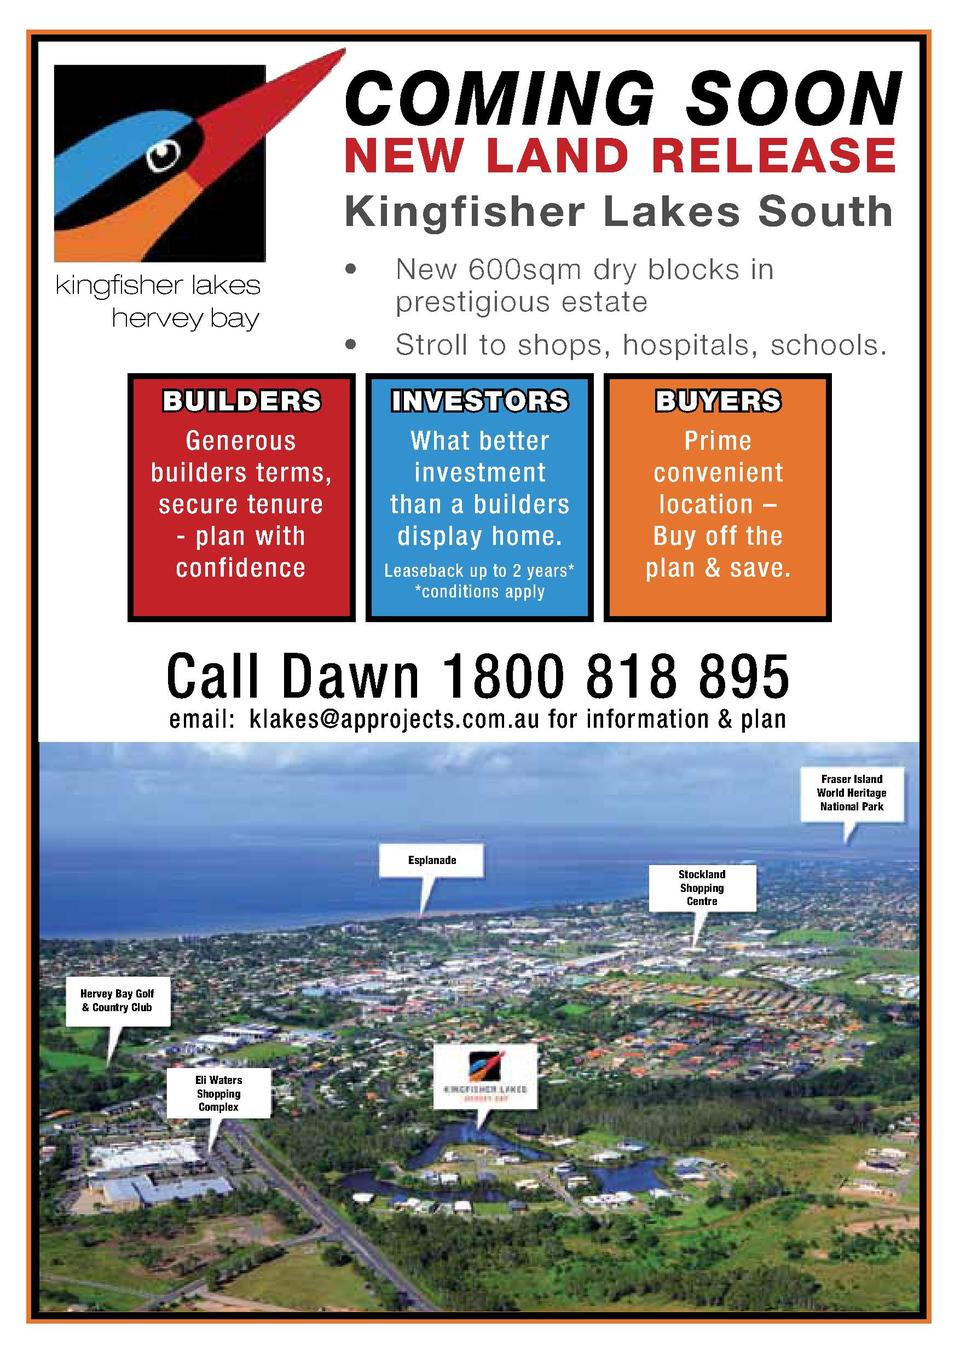 COMING SOON NEW LAND RELEASE Kingfisher Lakes South kingfisher lakes hervey bay BUILDERS Generous builders terms, secure t...